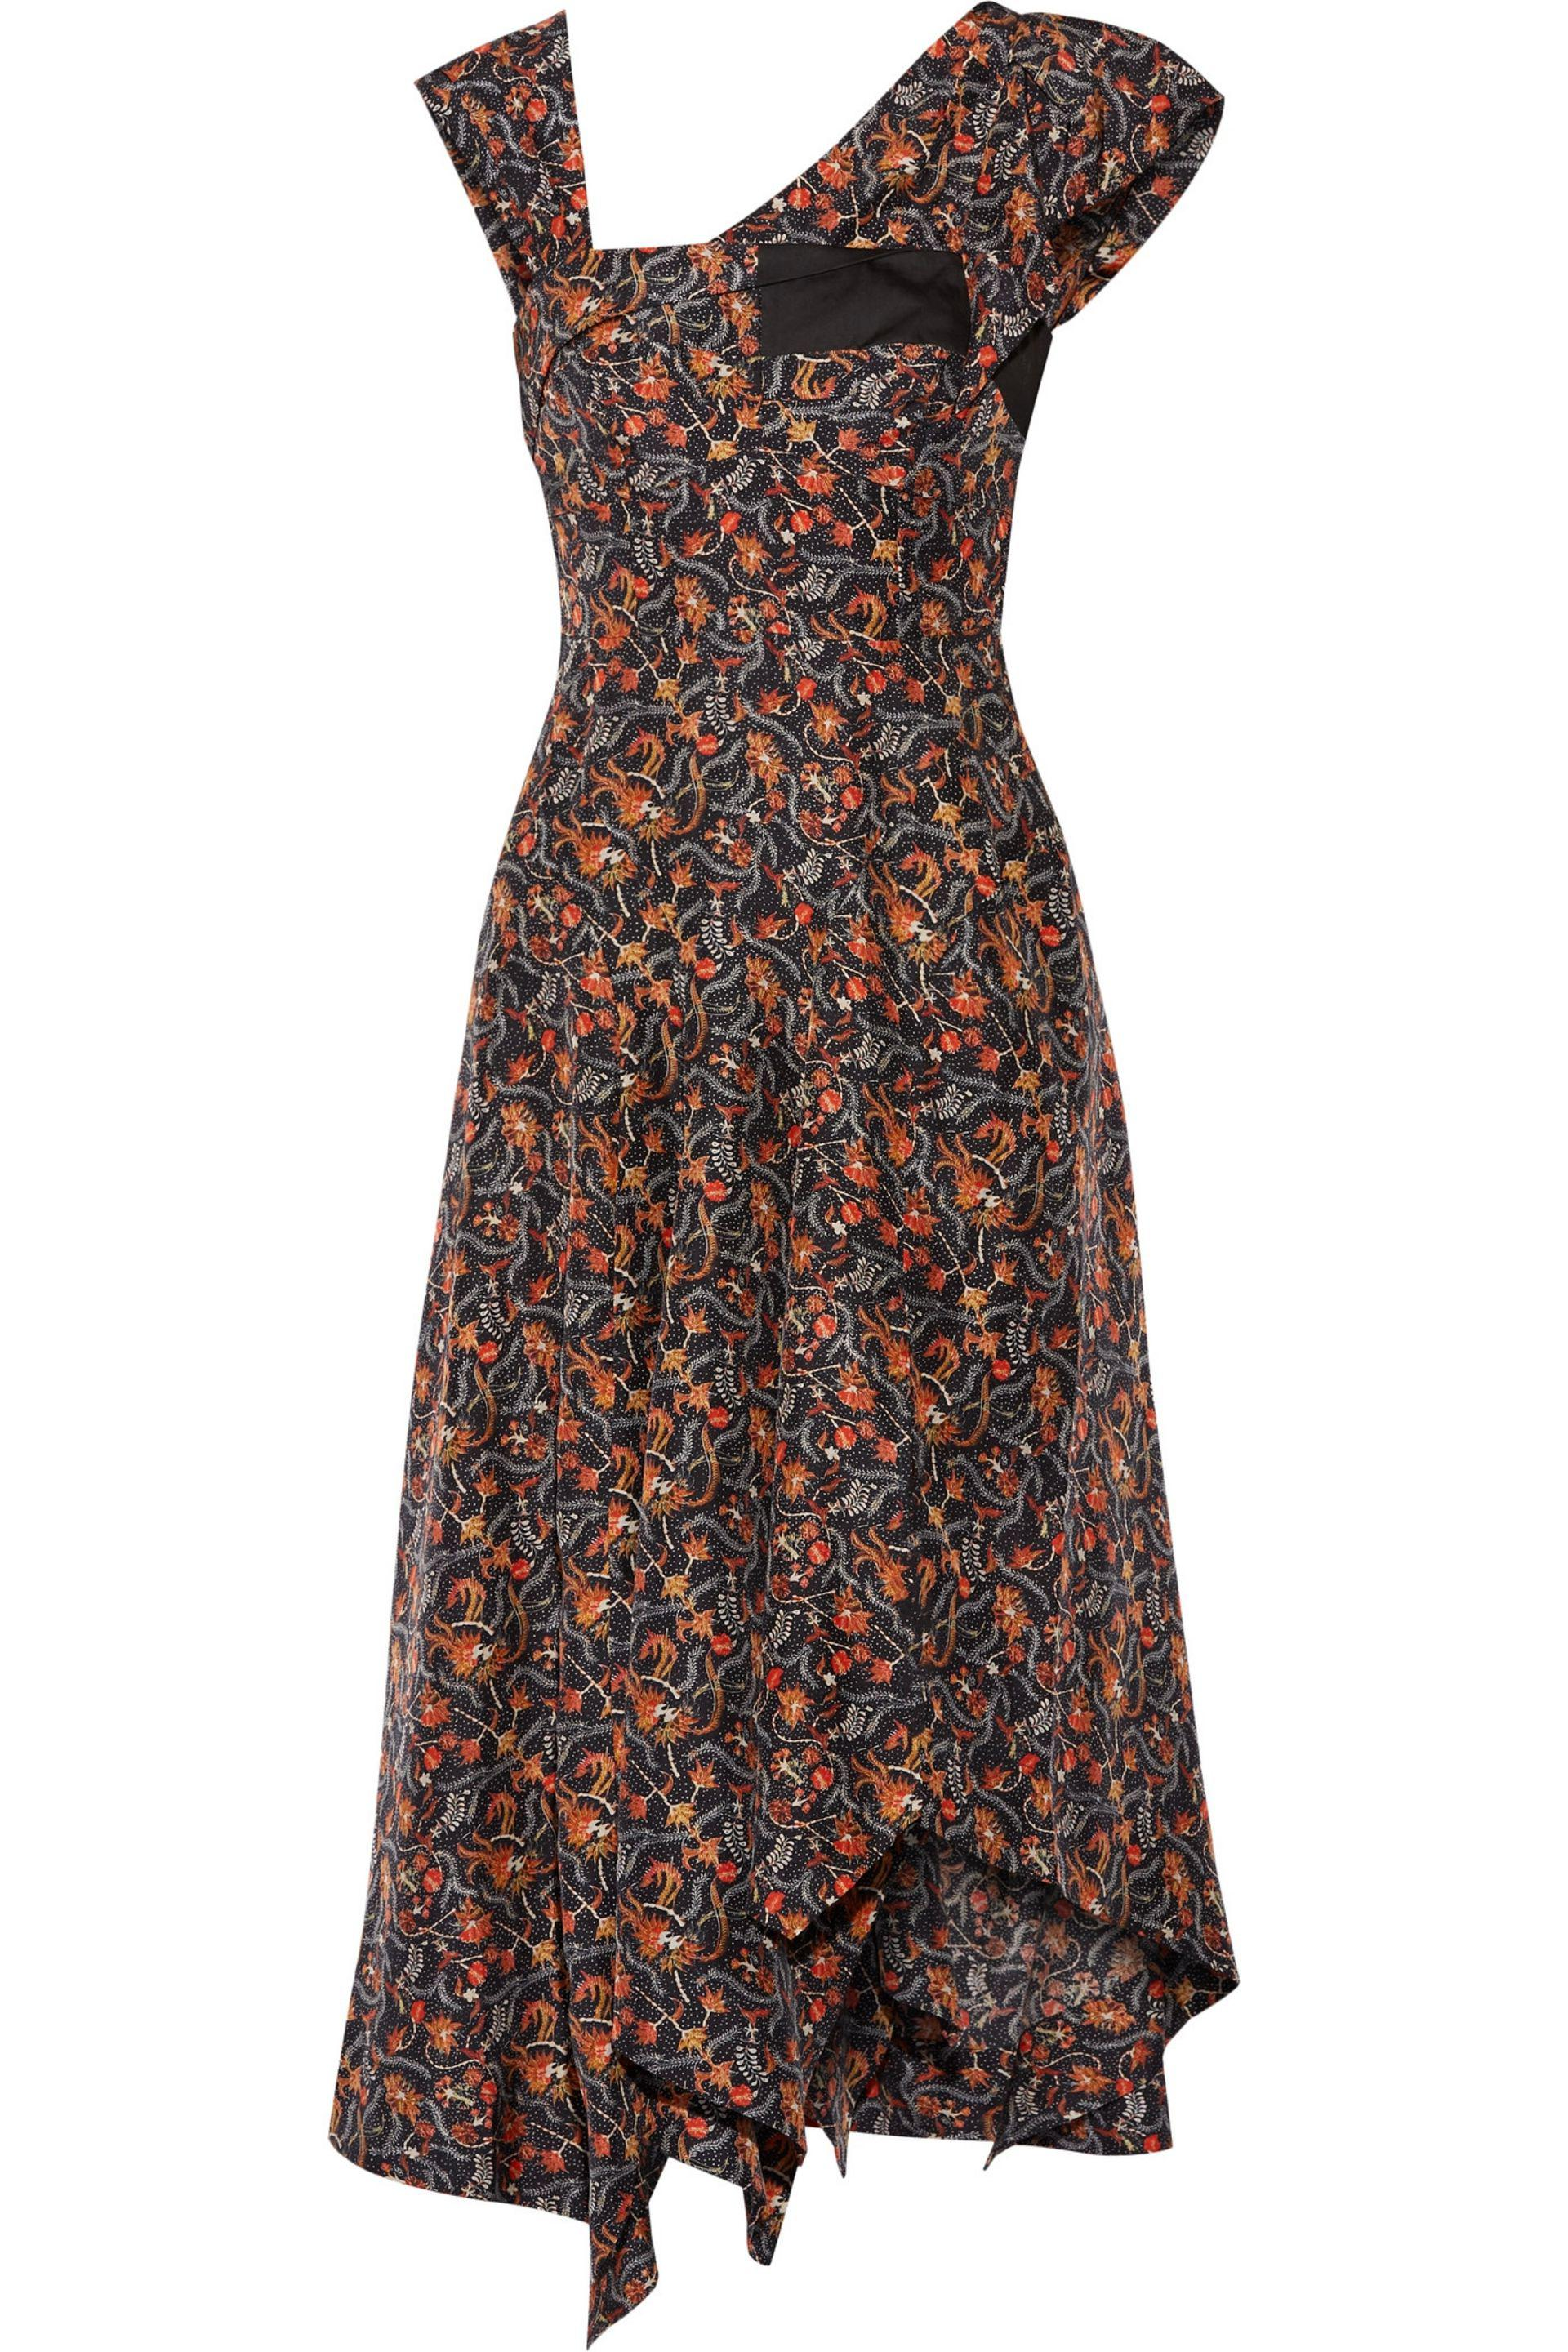 Isabel Marant Woman Rocky Asymmetric Printed Silk-voile Midi Dress Midnight Blue Size 42 Isabel Marant Sale Wholesale Price Free Shipping Looking For With Credit Card For Sale How Much Exclusive For Sale N5SSSPnph